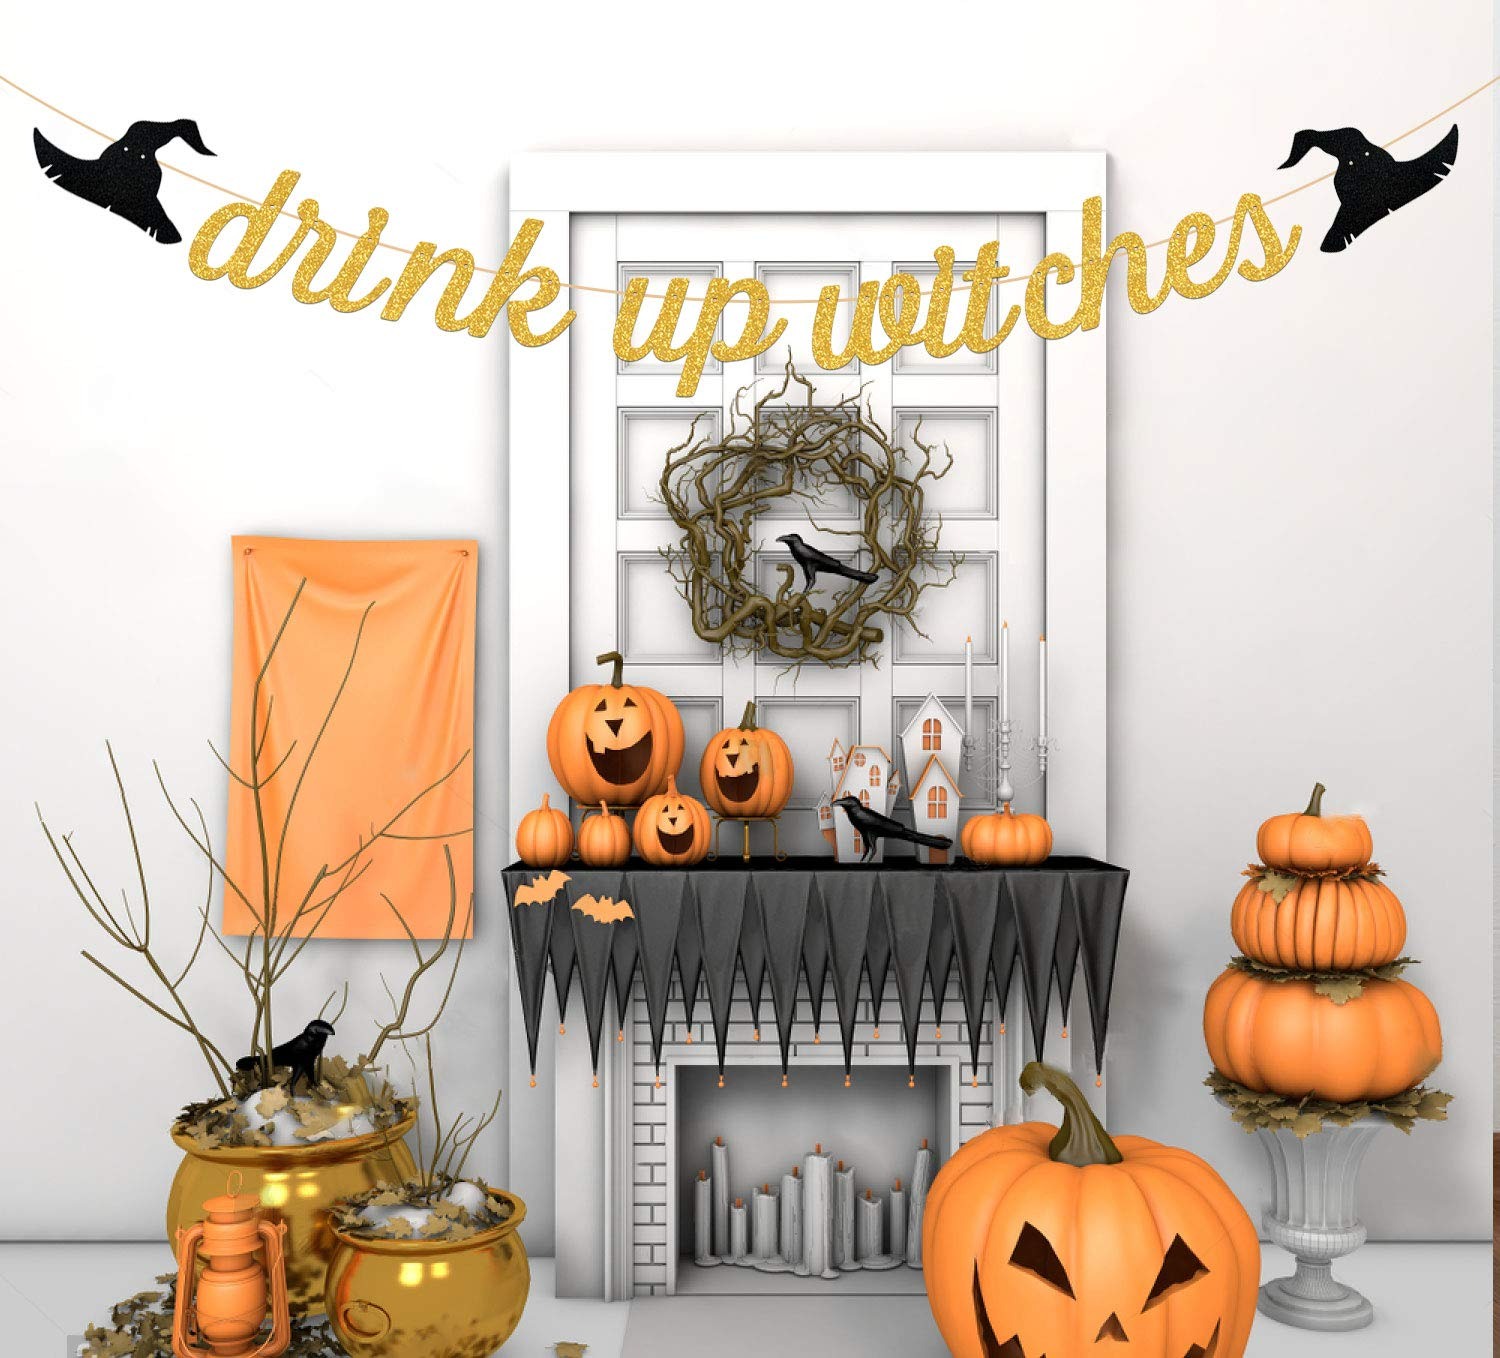 Gold Glittery Drink Up Witches Banner Halloween Theme Party Decorations,Halloween Party Supplies,Mantle Home Decor,Yard Decor